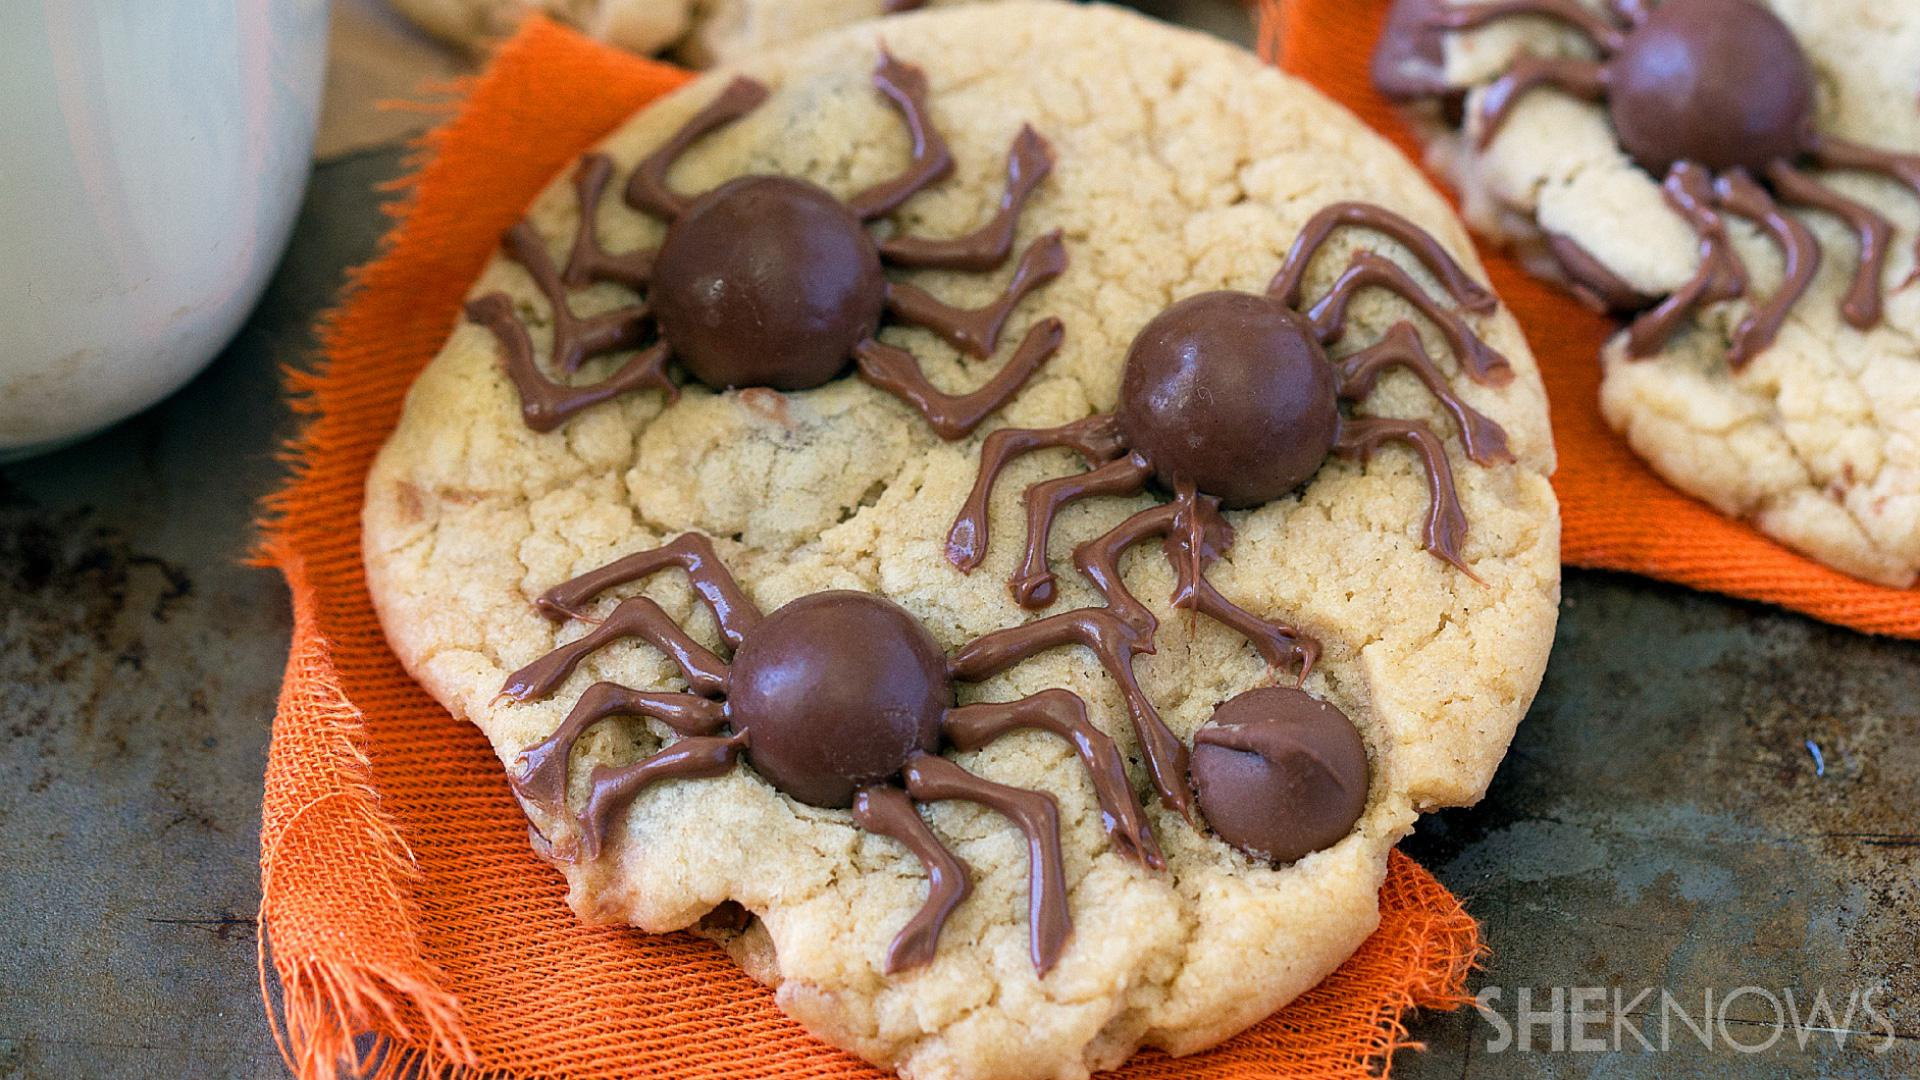 Creepy spider cookies are an easy-to-make treat